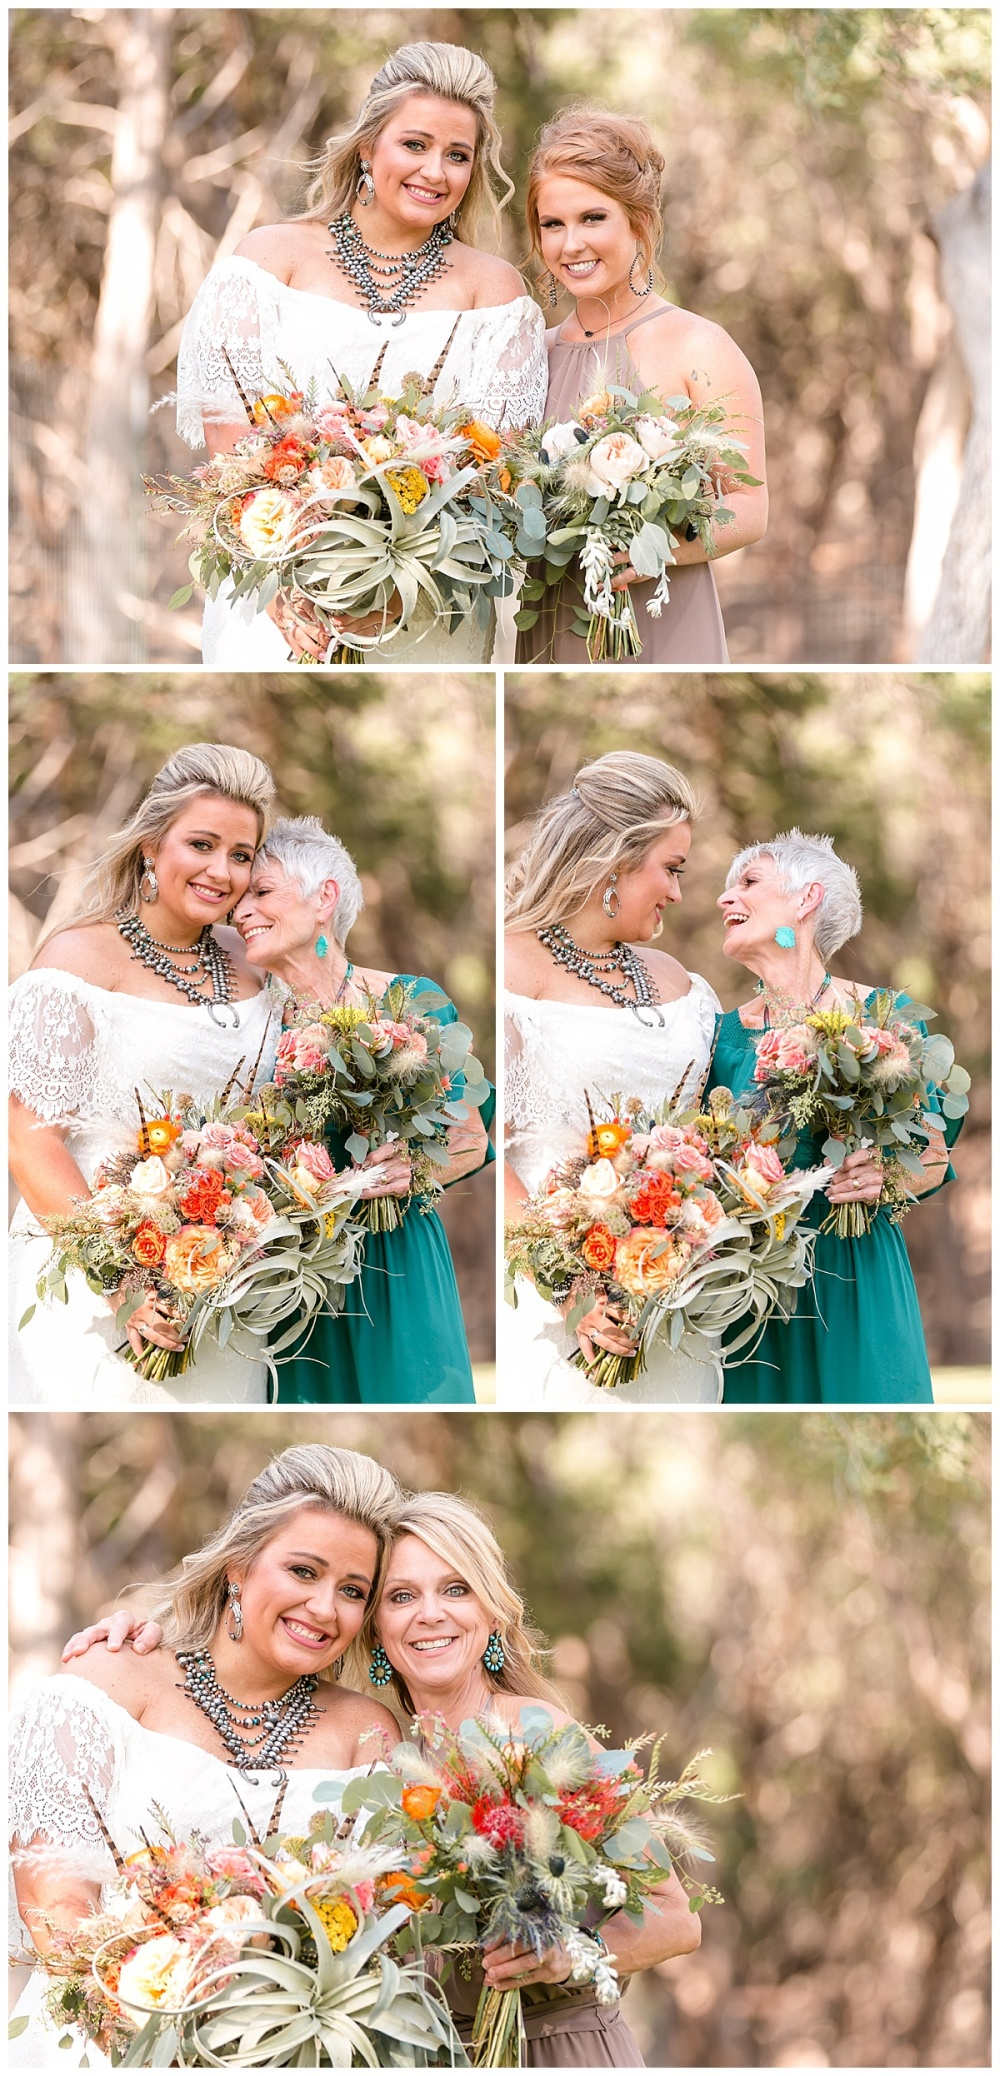 Texas-Wedding-Photographer-Braded-T-Ranch-Kendalia-Bride-Groom-Southwestern-Style-Carly-Barton-Photography-Vogt_0039.jpg